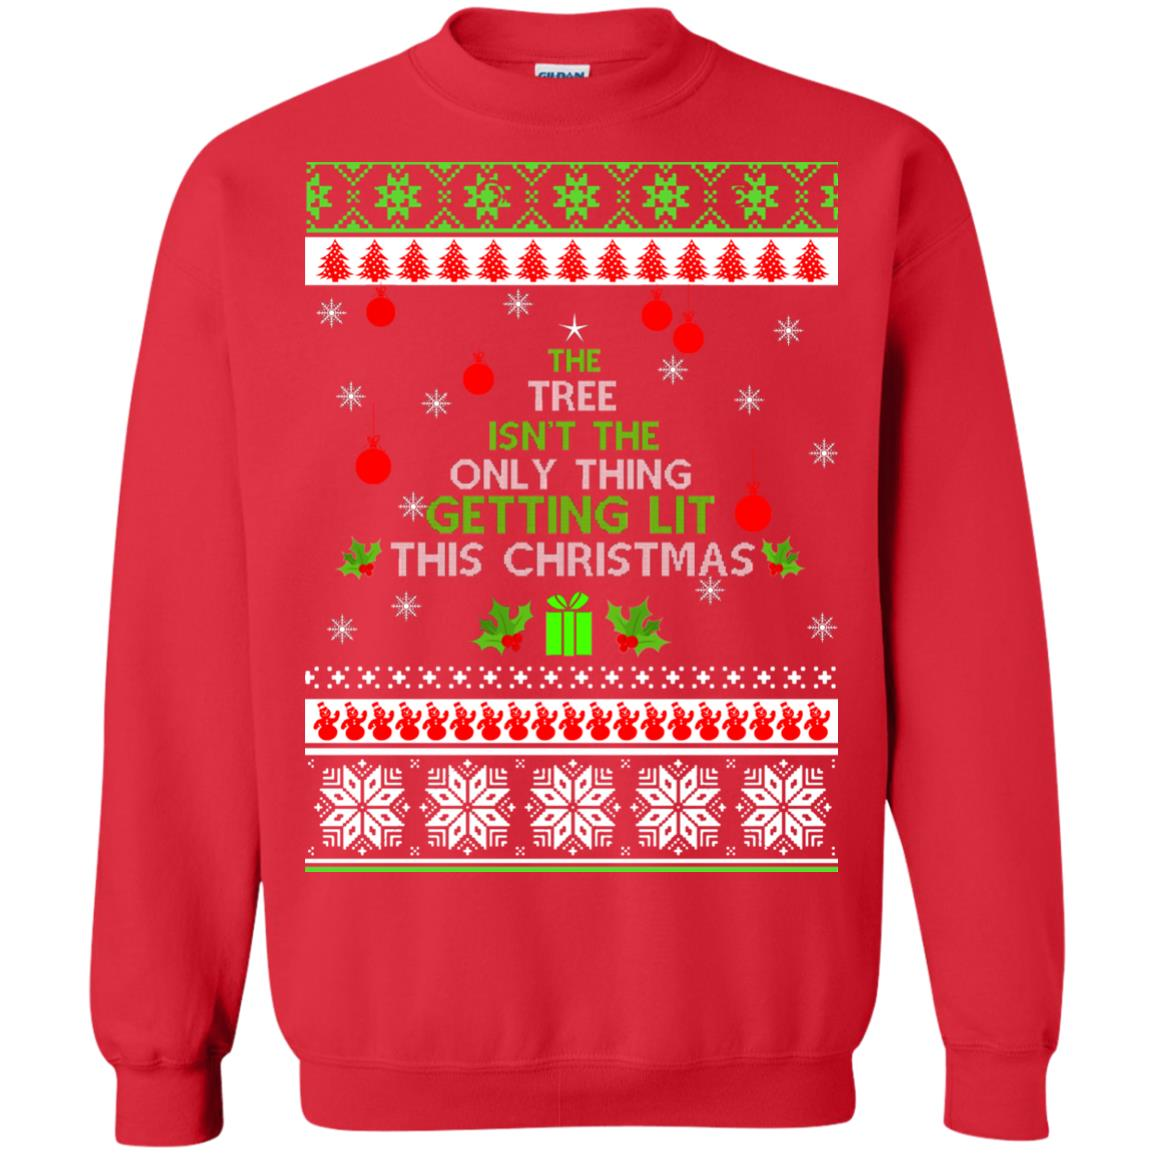 image 5571 - The Tree Isn't The Only Thing Getting Lit This Christmas Sweater, Long Sleeve